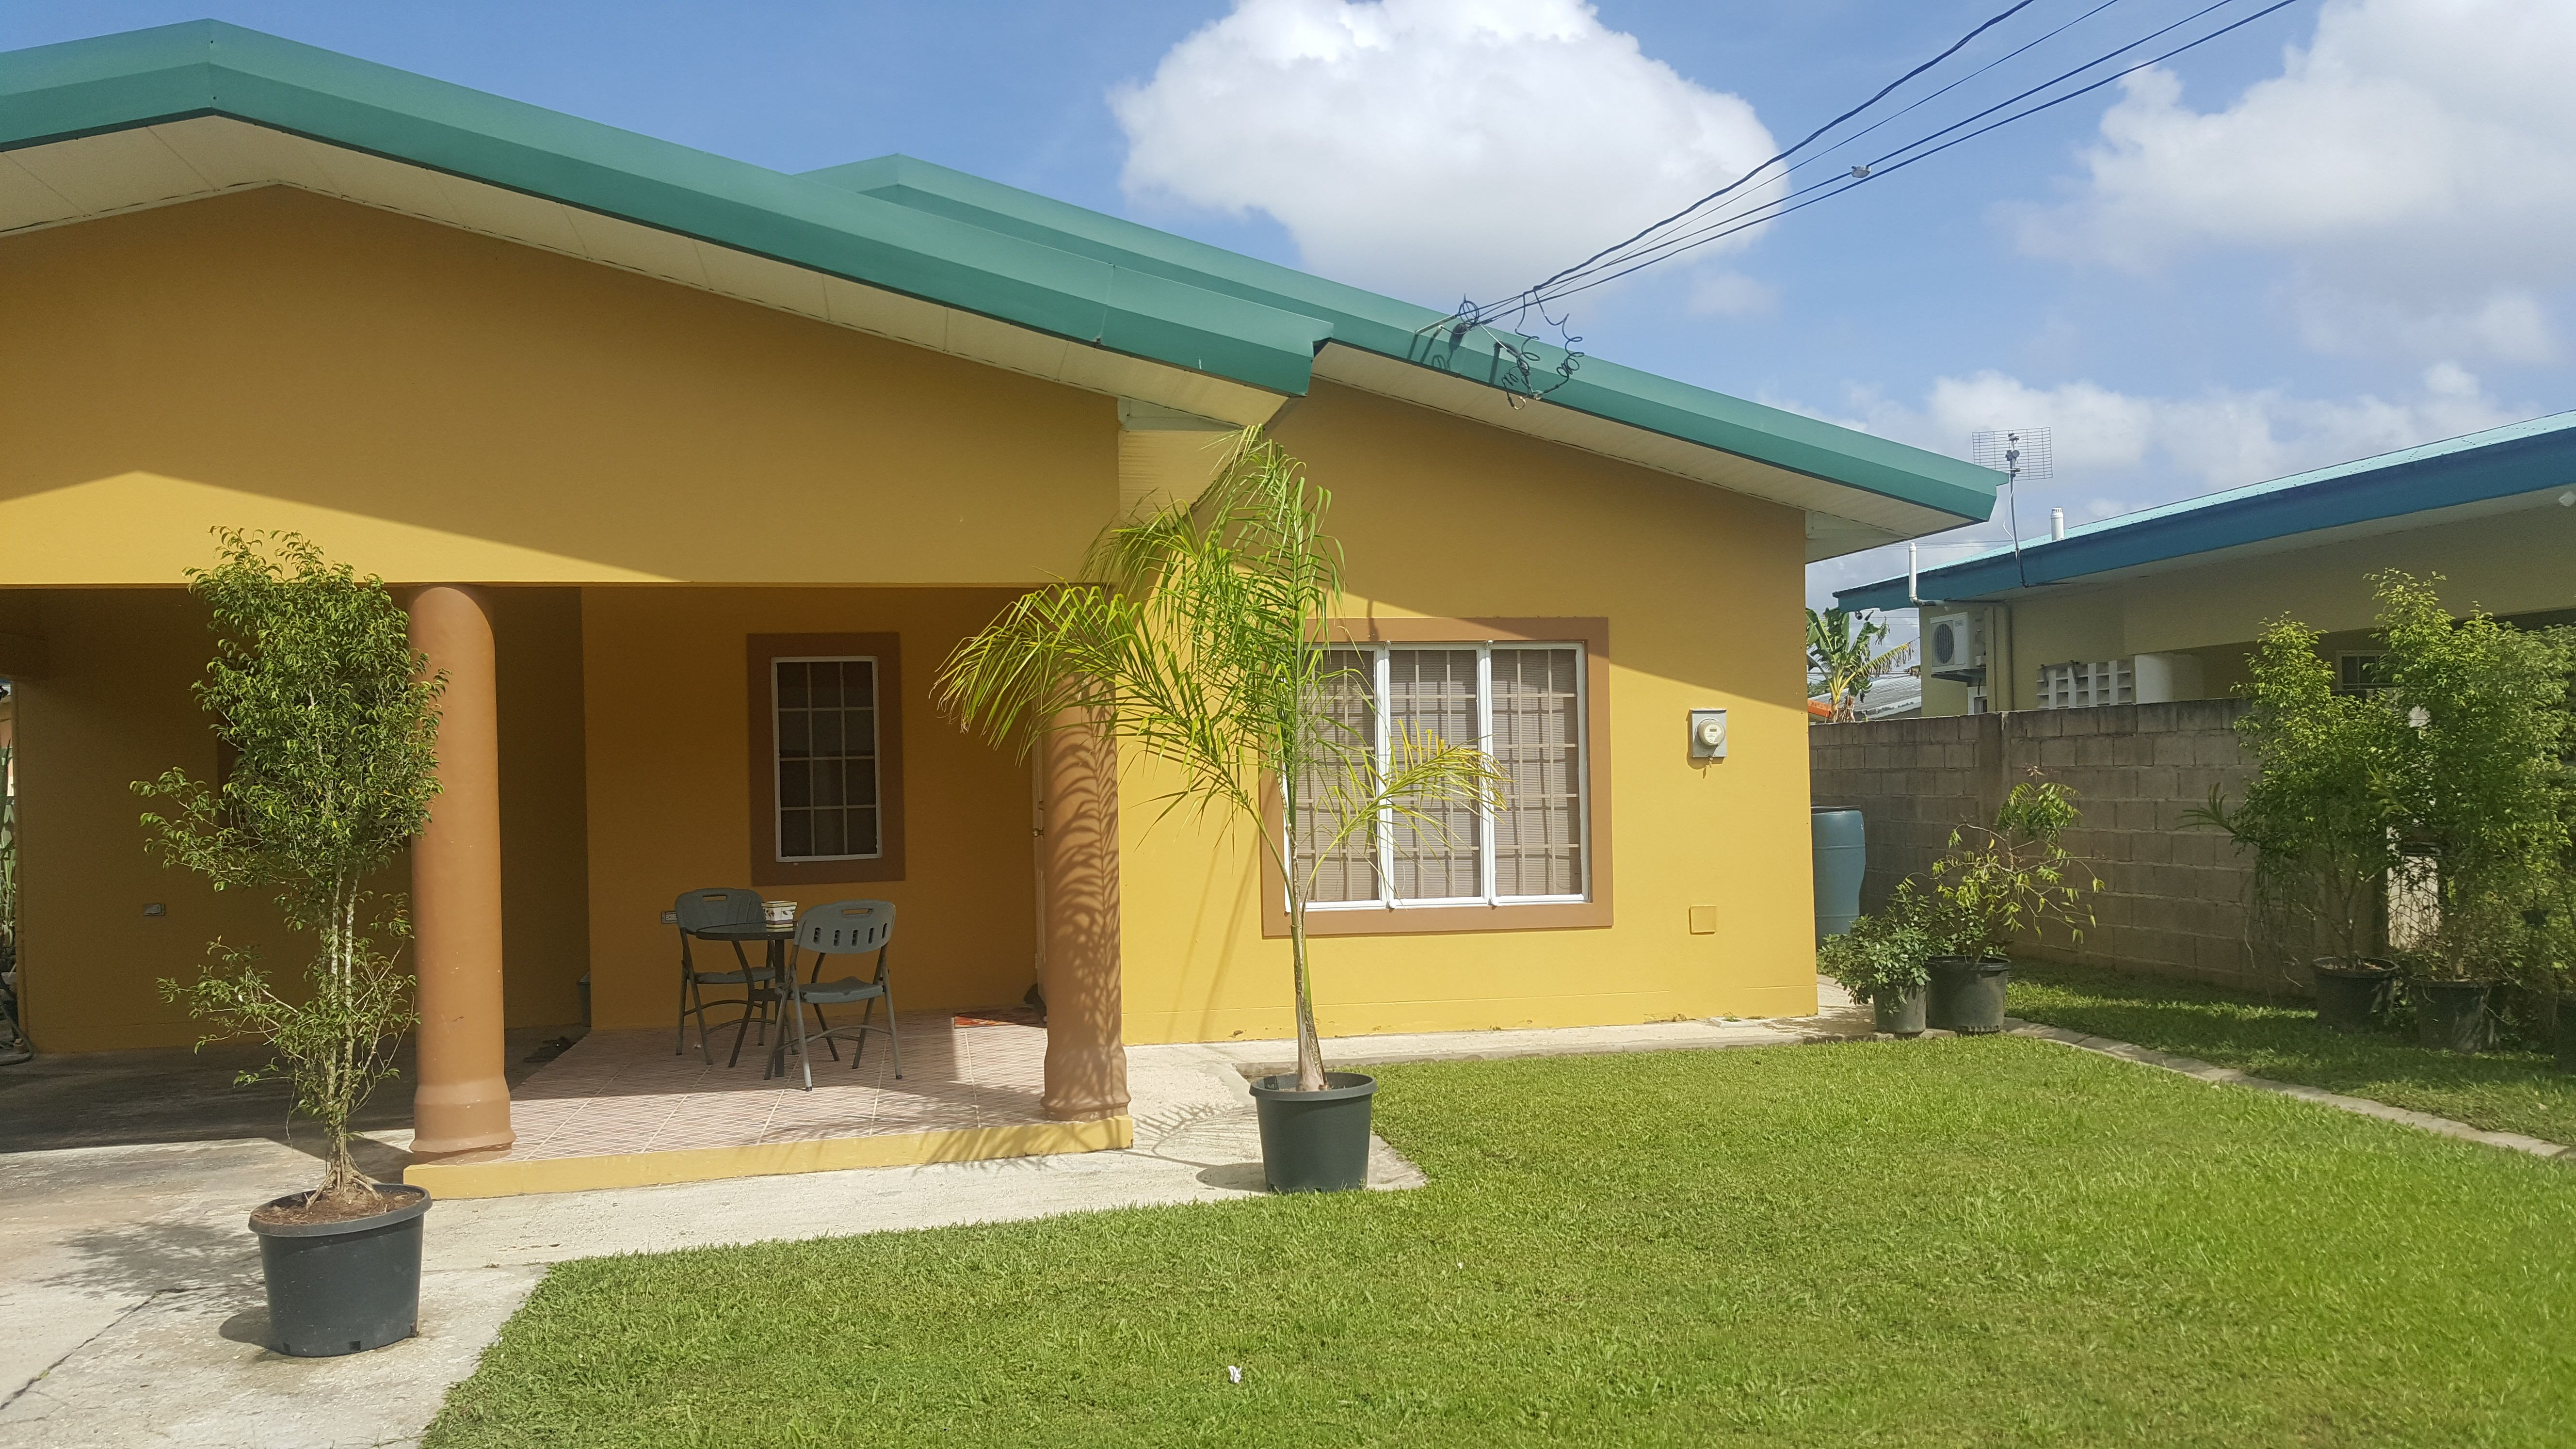 Ascot Gardens Arima Home For Sale (With images) Home and